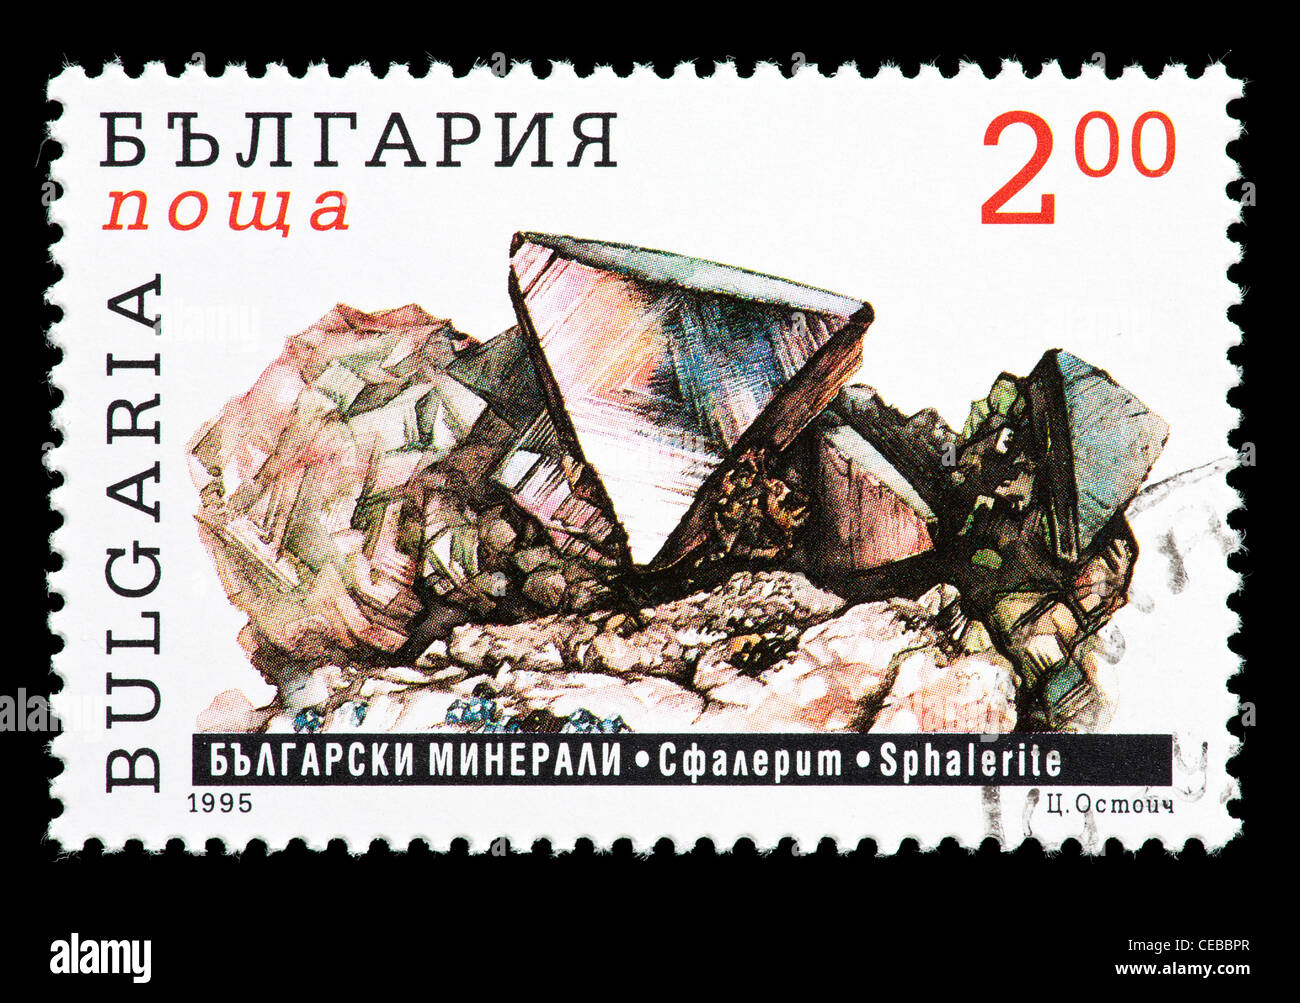 Postage stamp from Bulgaria depicting sphalerite crystals - Stock Image